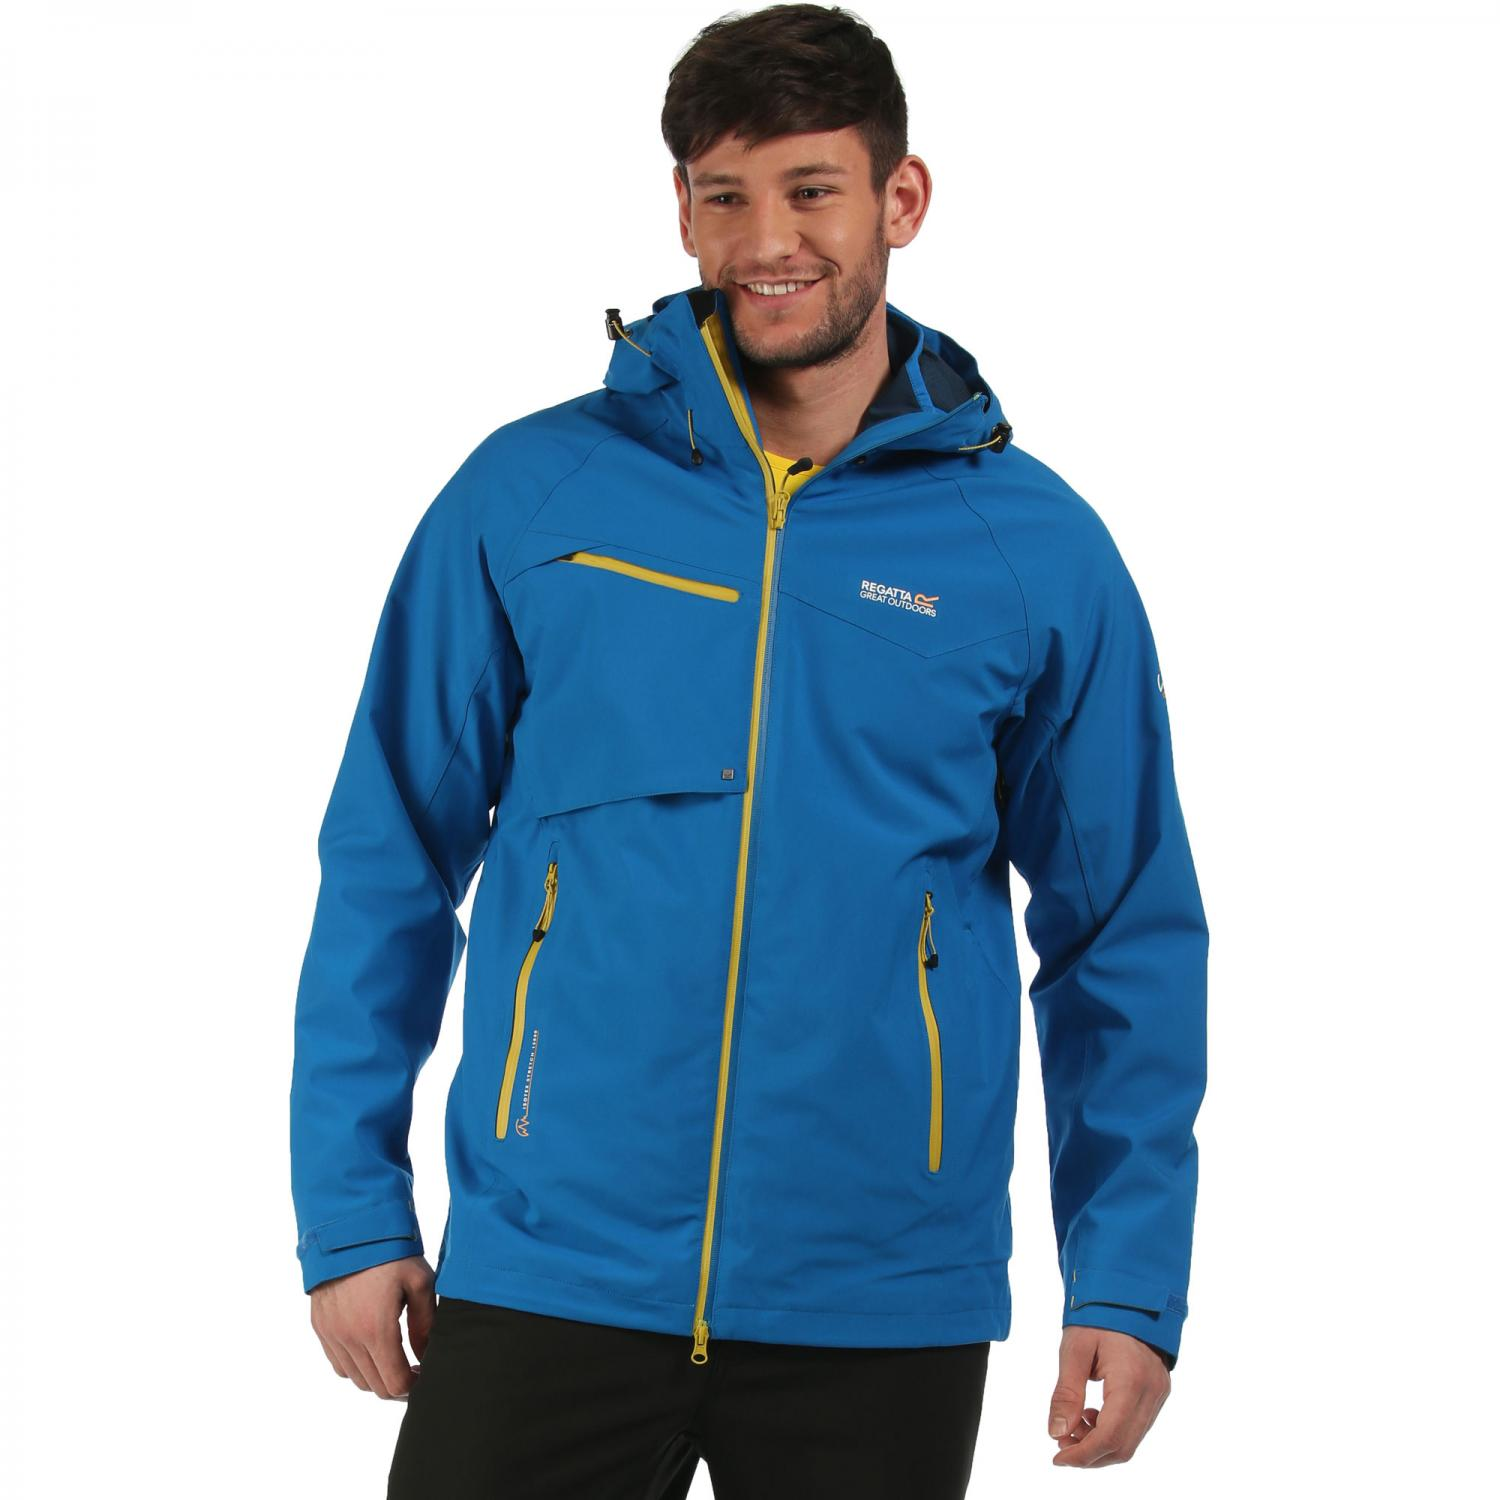 Glyder II 3 in 1 Jacket Imperial Blue